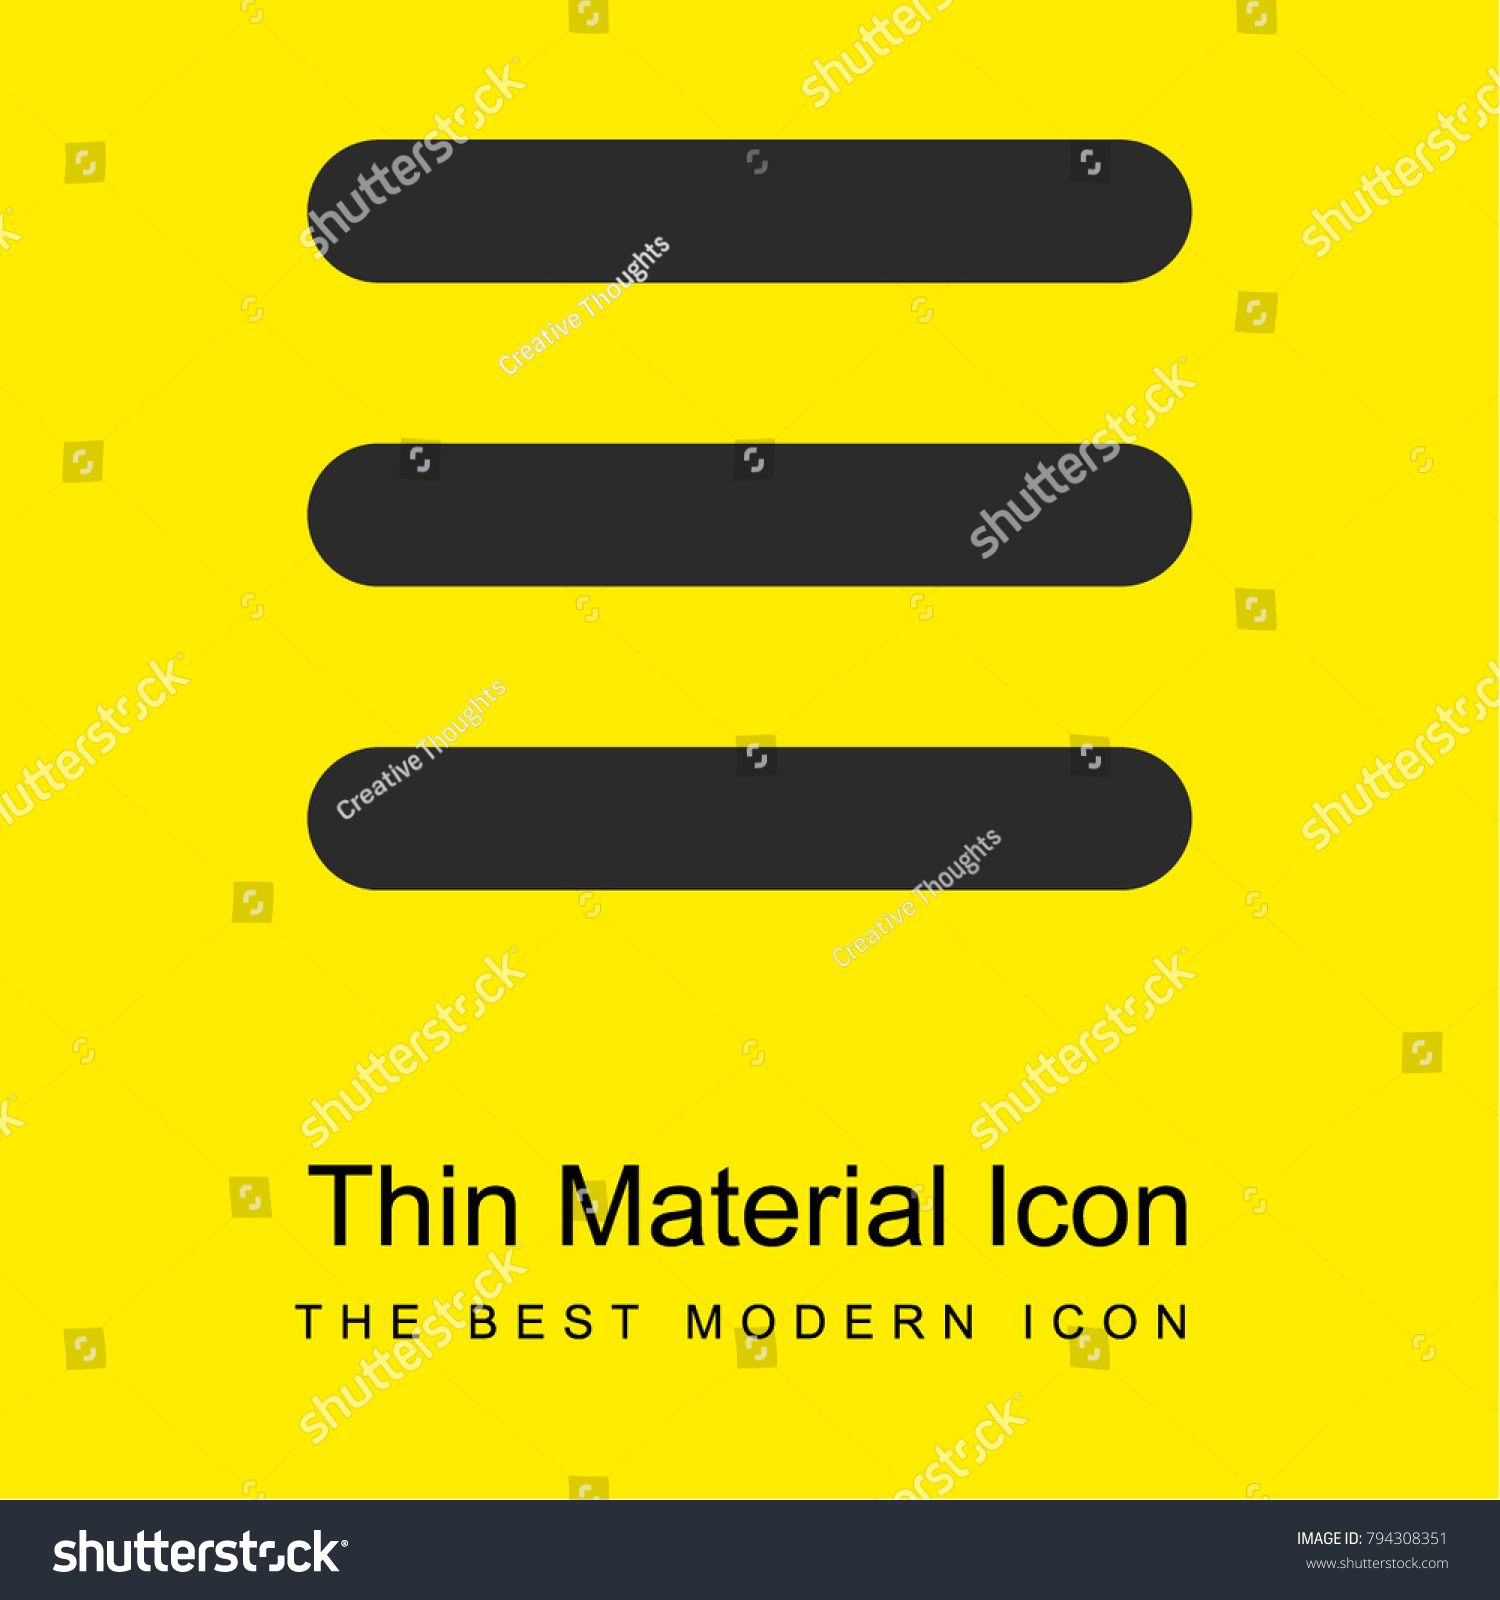 Aldi stock symbol images symbol and sign ideas nickelodeon stock symbol image collections symbol and sign ideas demarini stock symbol images symbol and sign buycottarizona